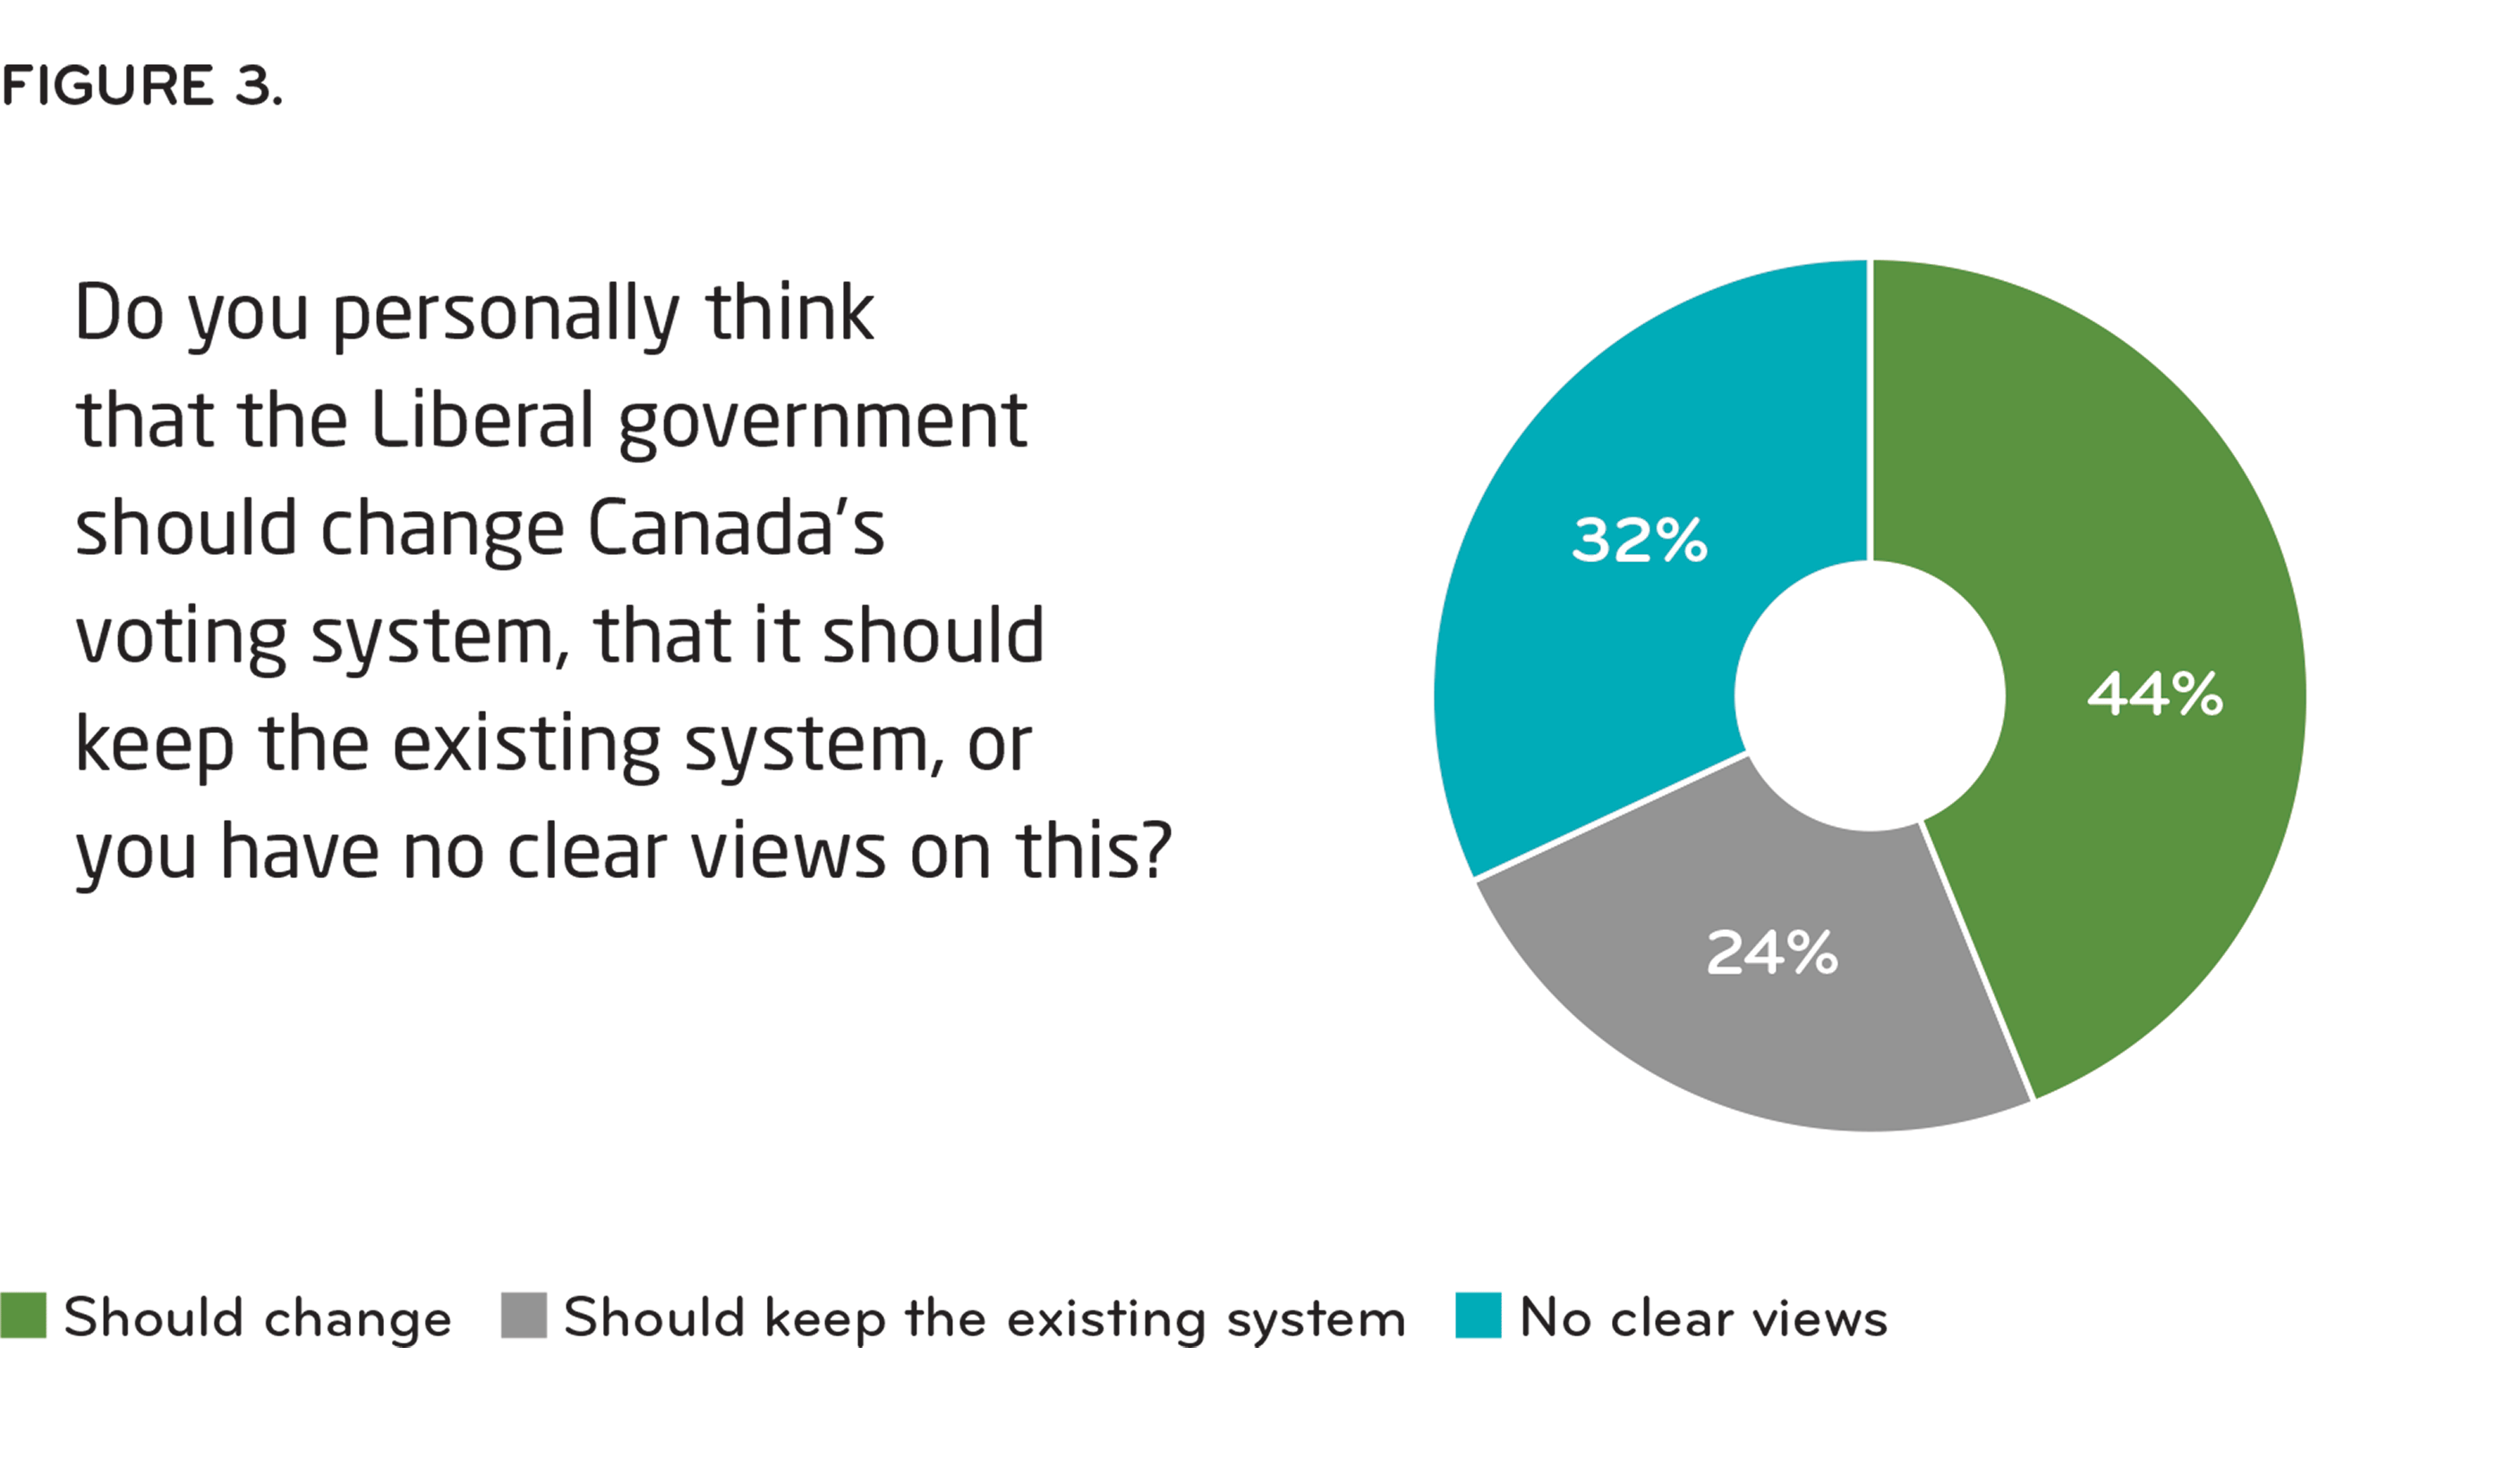 [ Figure 3: Do you personally think that the Liberal government should change Canada's voting system, that it should keep the existing system, or you have no clear views on this? ]